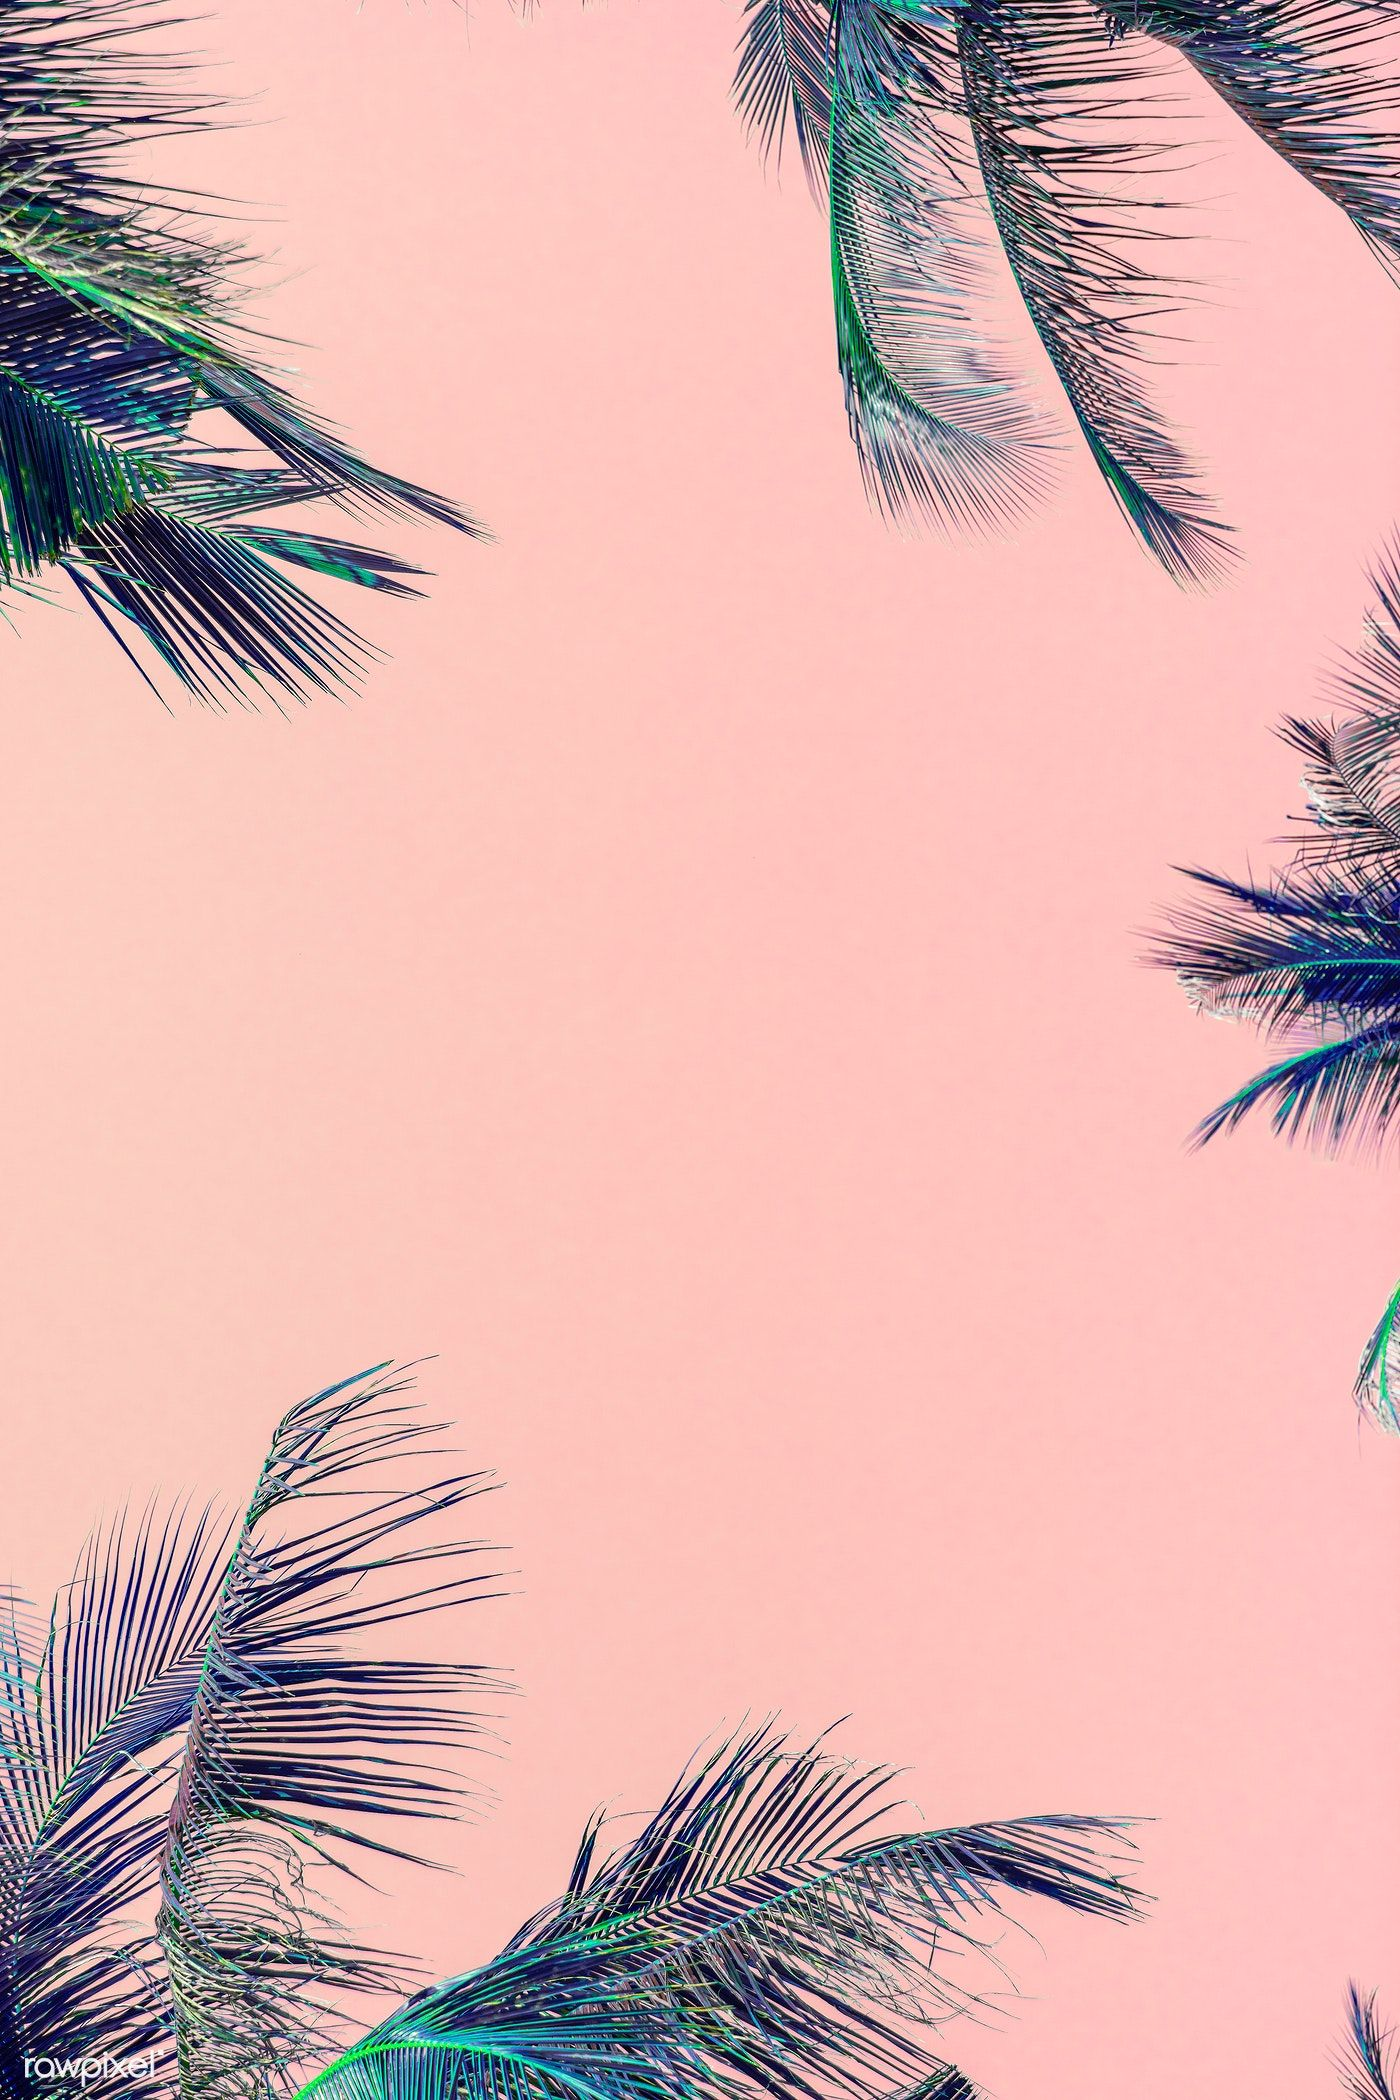 Tropical Green Palm Leaves On Pink Background Free Image By Rawpixel Com Awirwreckkwrar In 2020 Iphone Wallpaper Tropical Pink Background Leaves Wallpaper Iphone